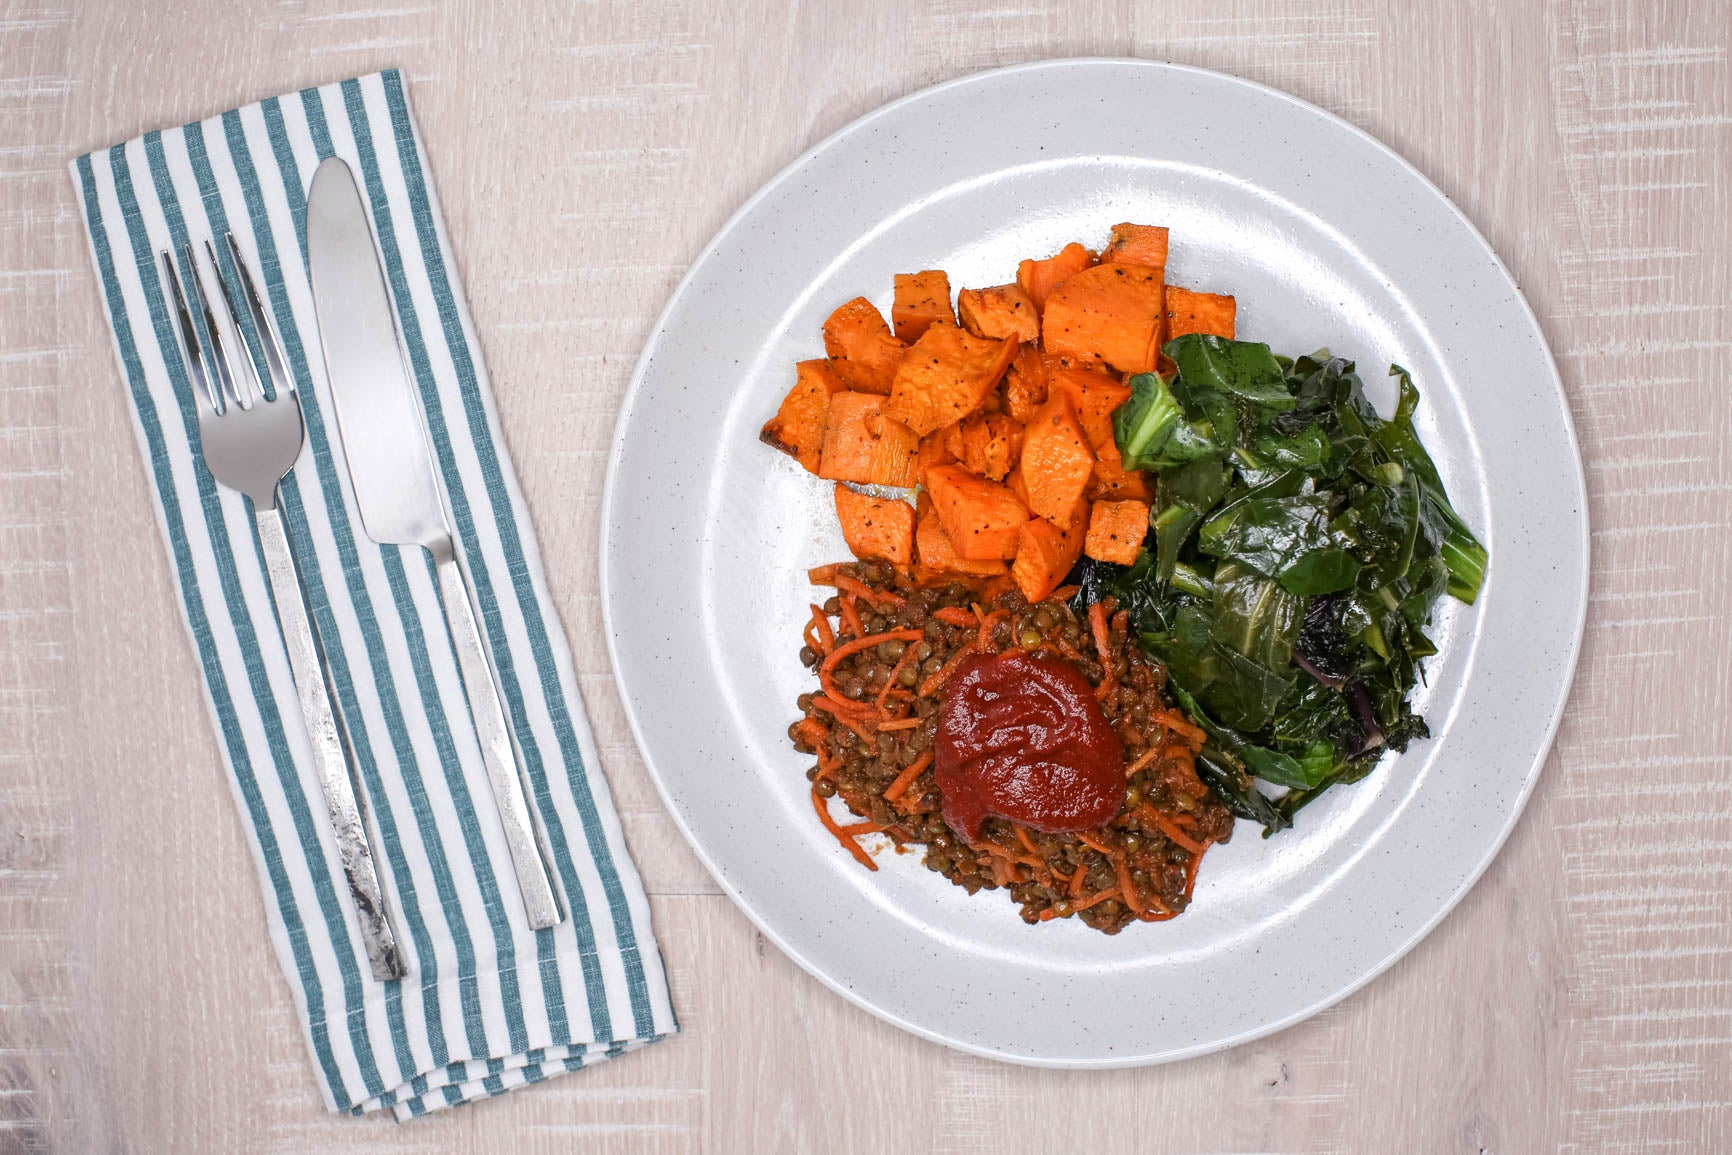 Vegan BBQ Lentils w/ Roasted Sweet Potatoes & Sauteed Greens